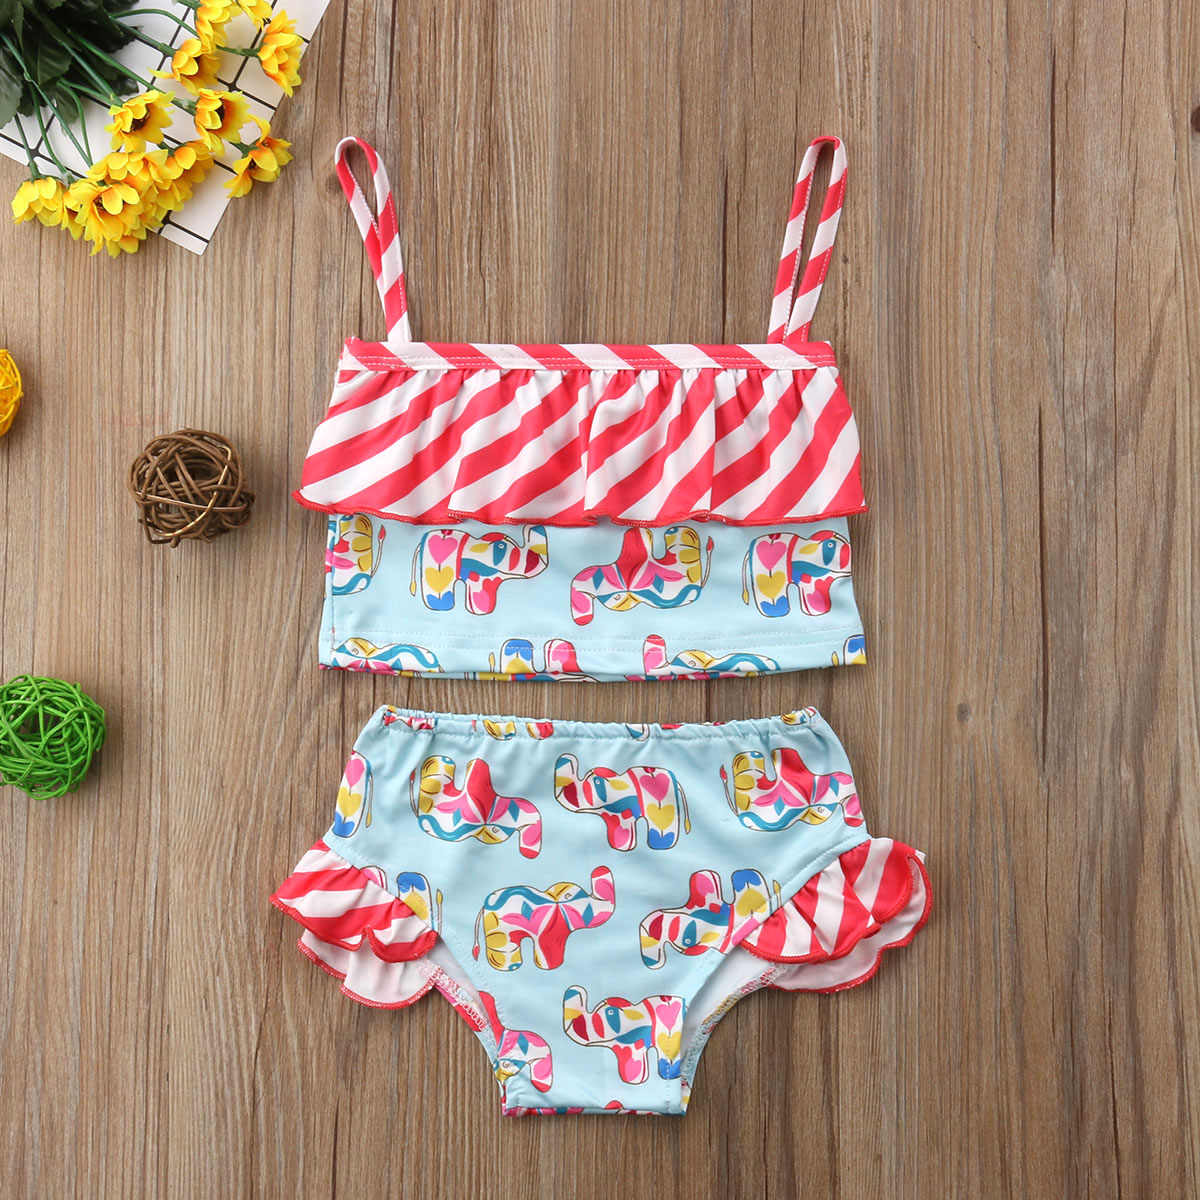 73dd0117e2 ... 2018 Swimwear Swimsuit Girls Kids Children Ruffle Striped Elephant  Bathing Suit One Piece Bikini Outfits Monokini ...